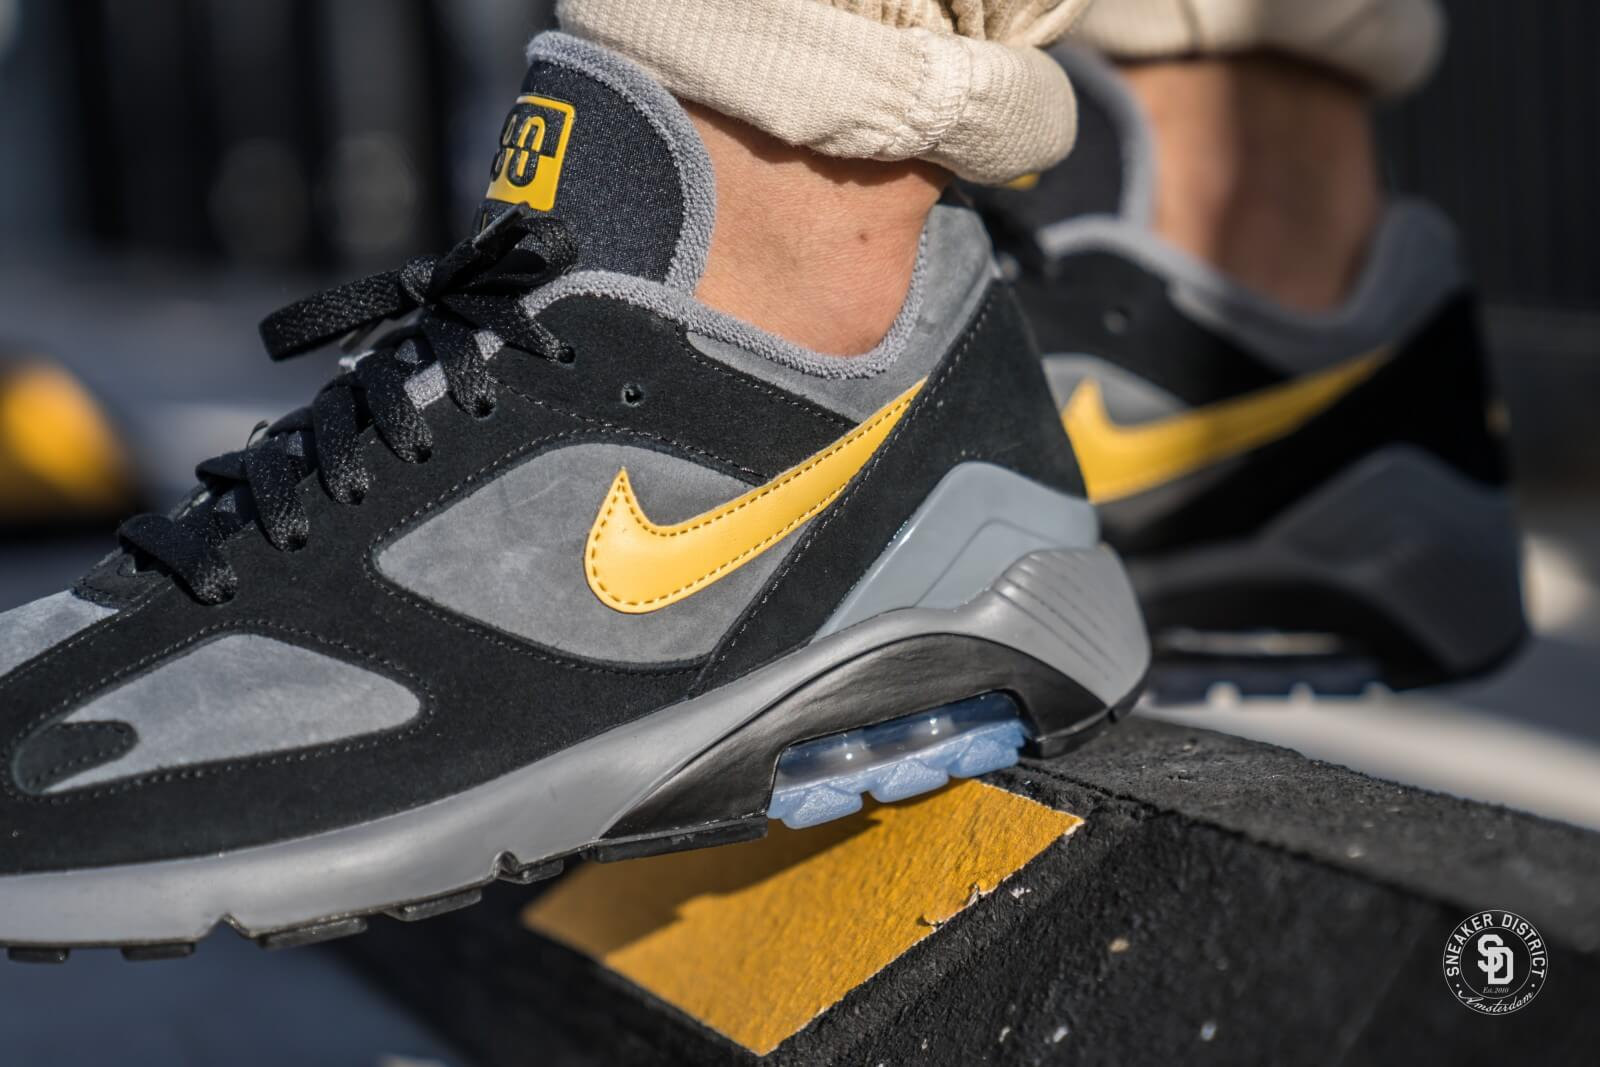 Chaussure Nike Air Max 180 Black And Gold Nike Air Max 180 Wholesale ... aba22f032